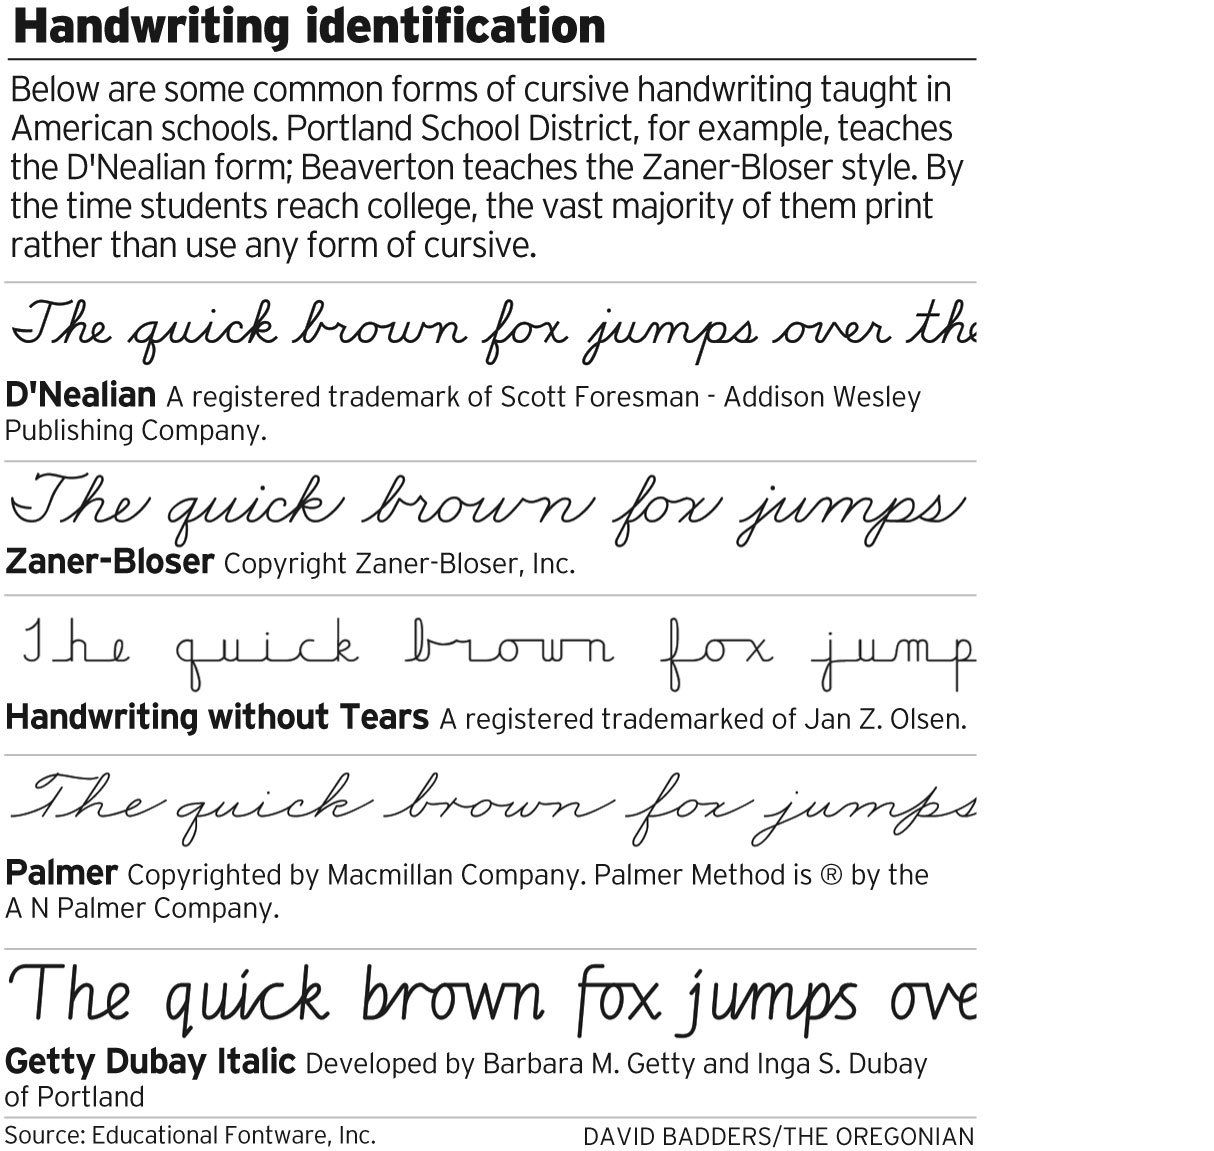 Worksheets  zaner-bloser vs d'nealian handwriting - Google Search | Learning